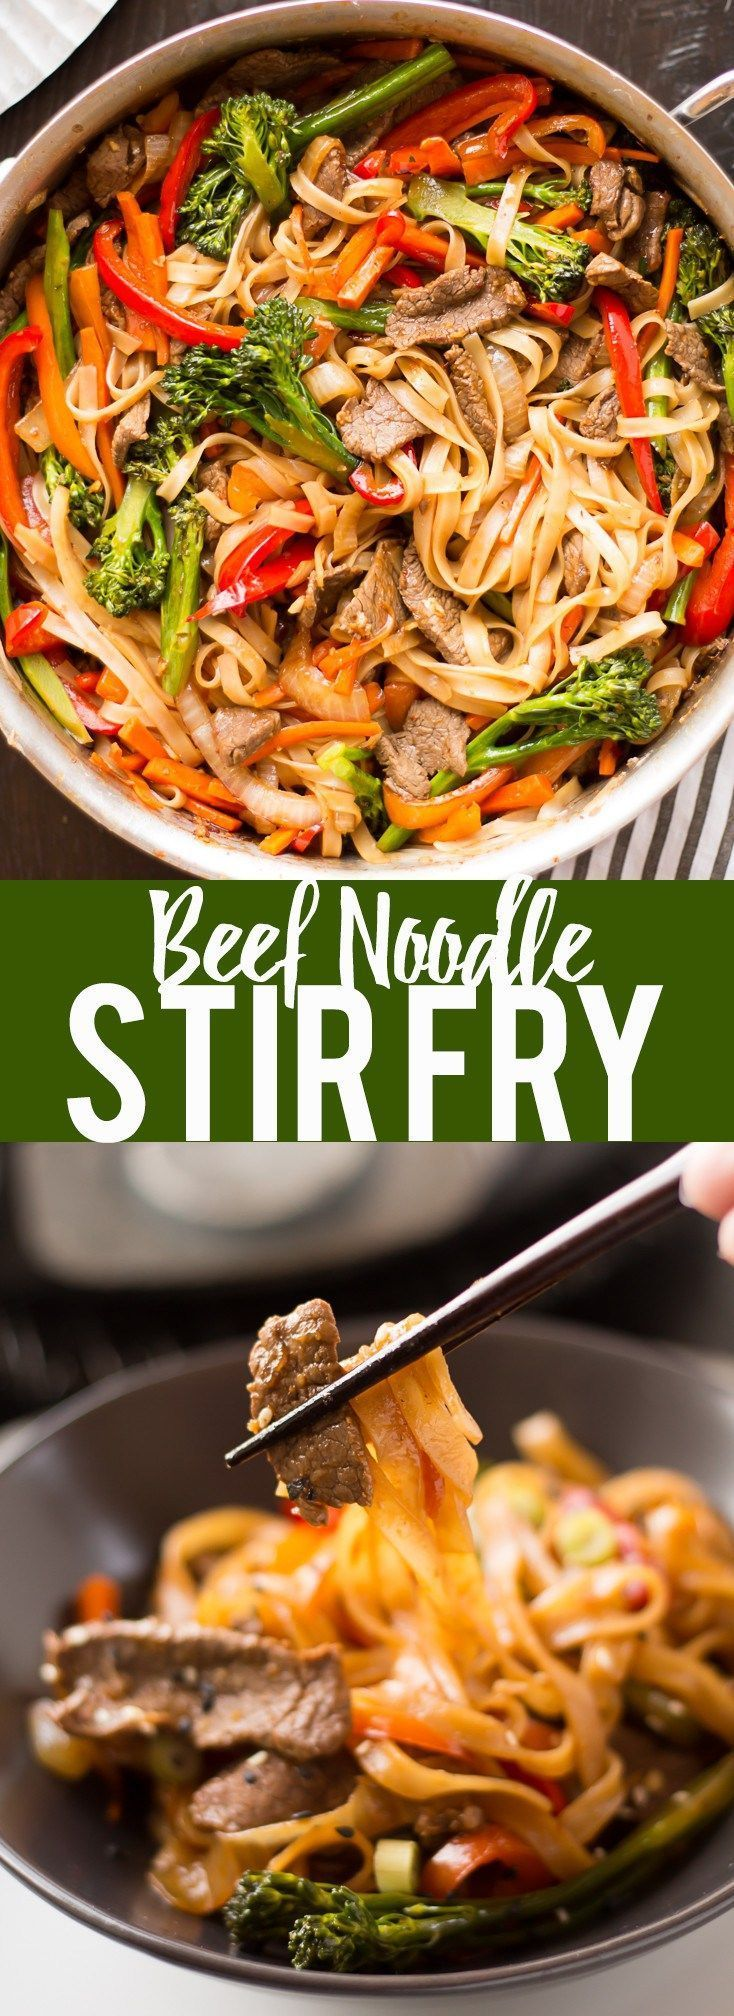 324 best asian recipes images on pinterest asian recipes noodle beef noodle stir fry asian food recipeschinese forumfinder Gallery